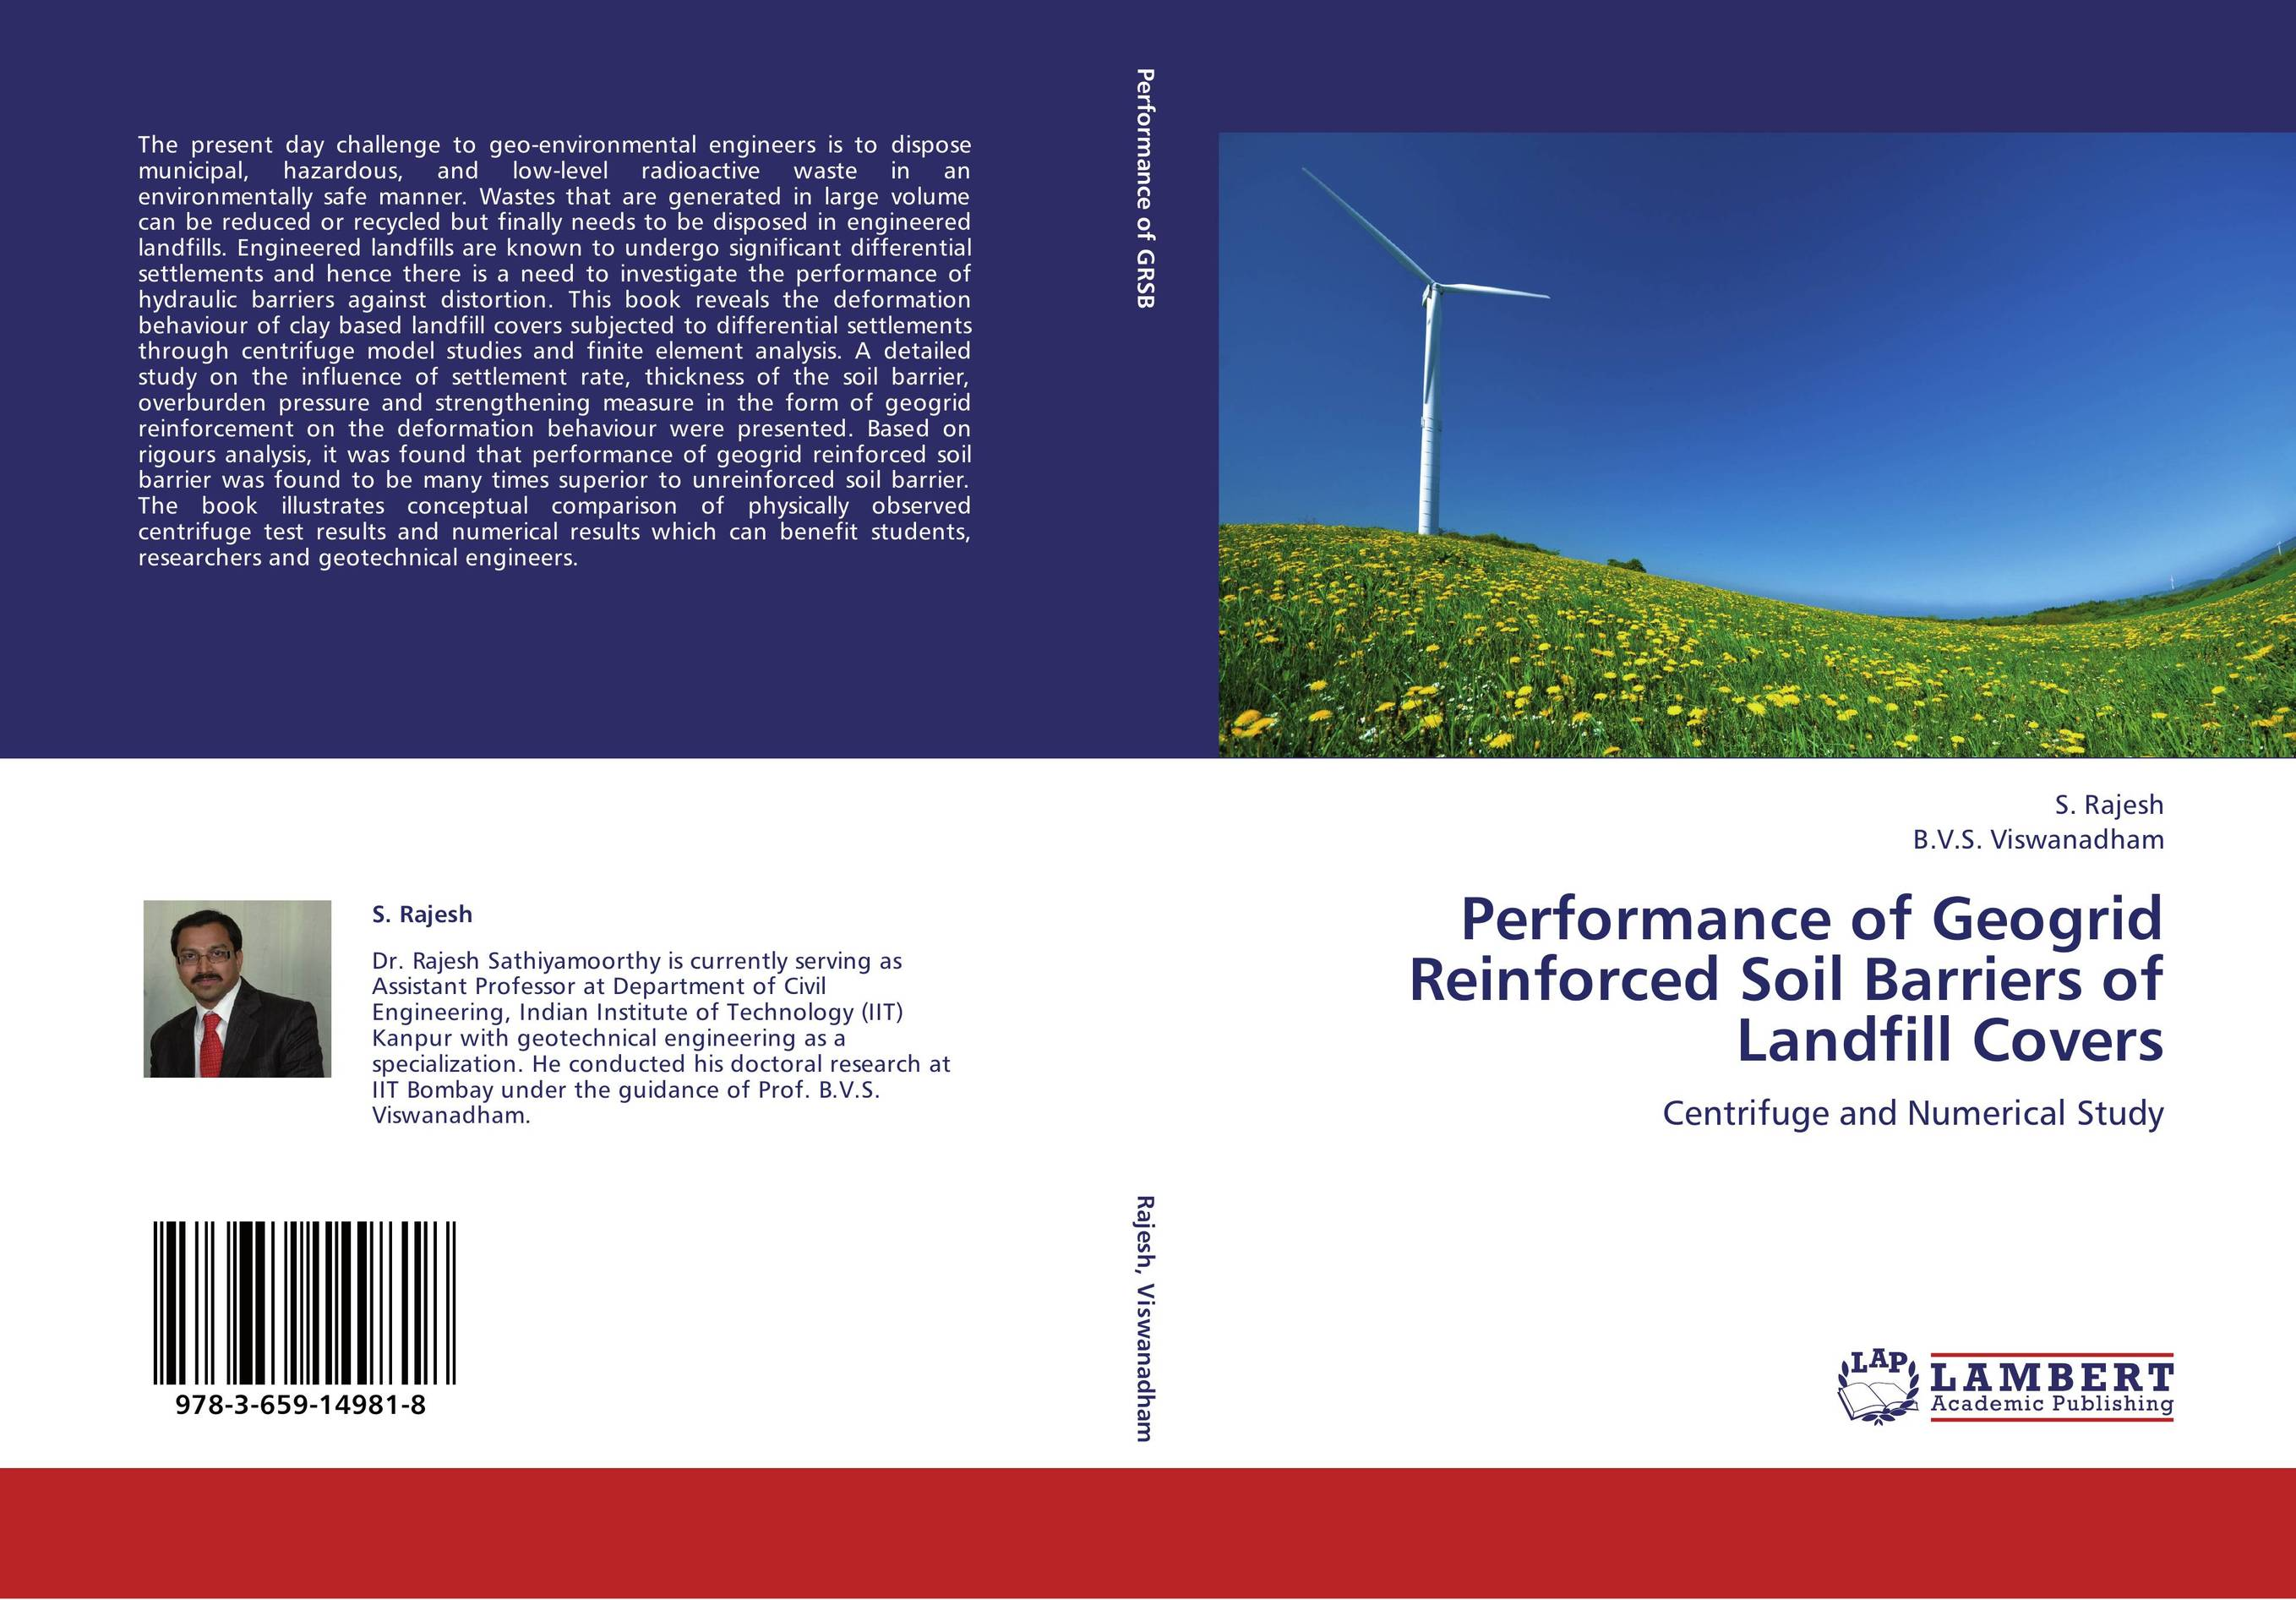 improvement of soft soils using geogrid Similarly geogrid is been used for improvement in properties of soft murum has also been studied also geogrid is used in mix of soil and 2% cement in materials used soil table 1: engineering properties of soil and murum srno 1 2 3 4 5 6 particulars specific gravity liquid limit percent.